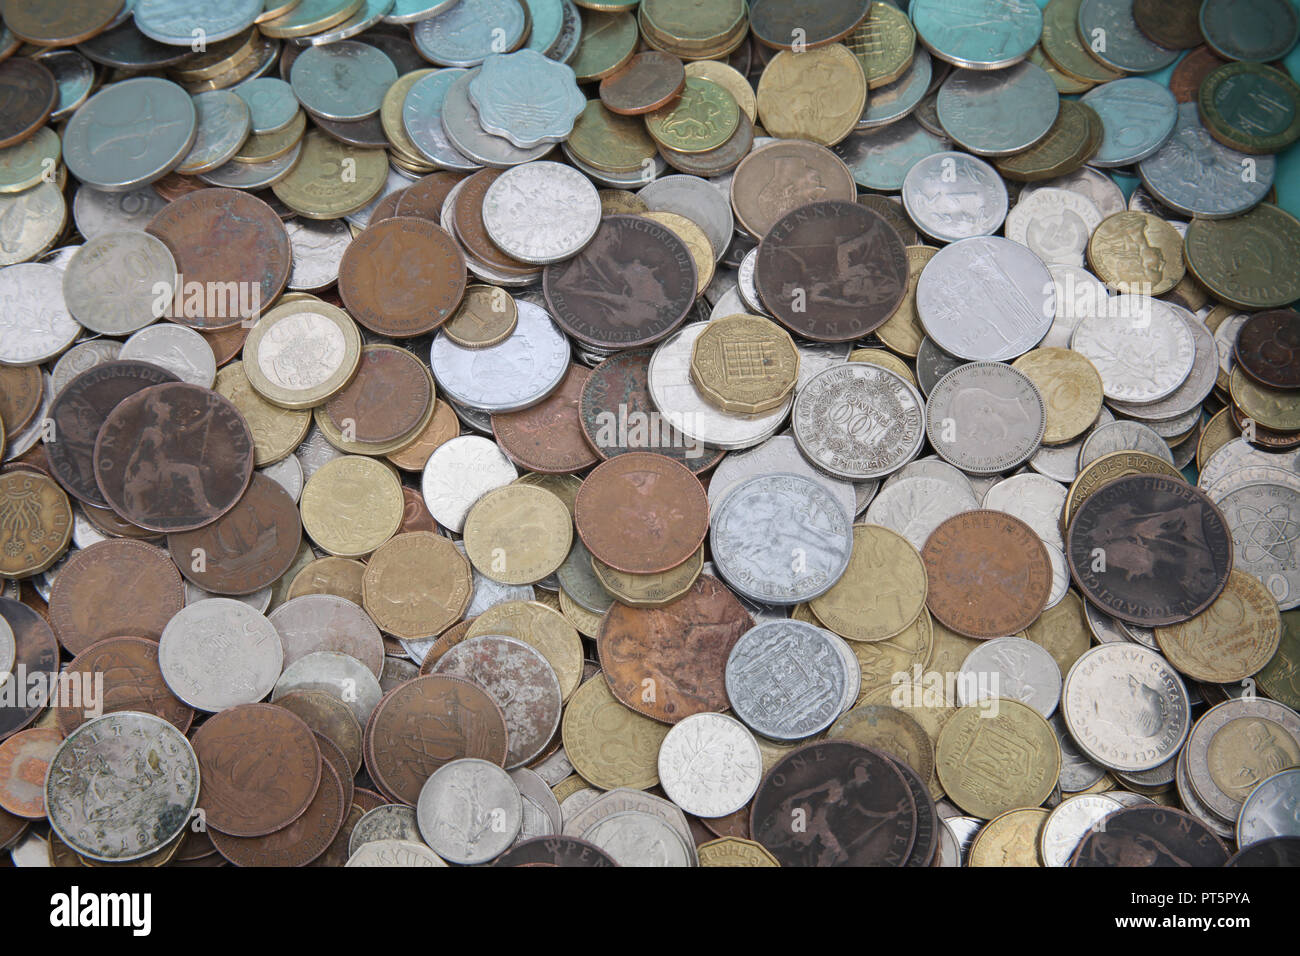 A collection of old world wide used coins. Stock Photo